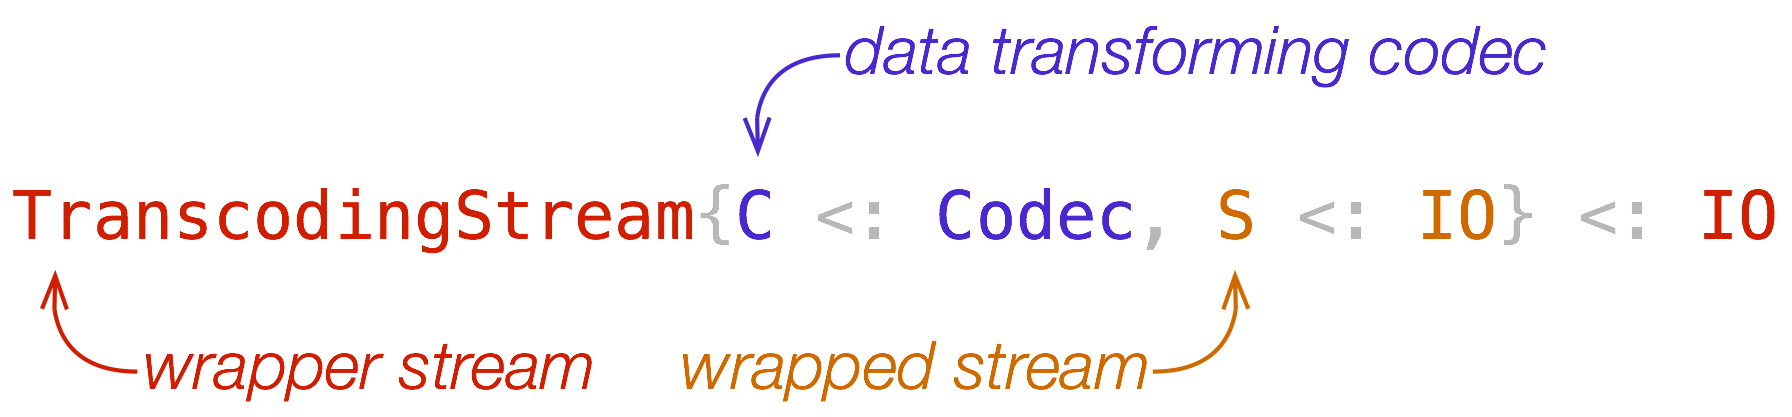 TranscodingStream